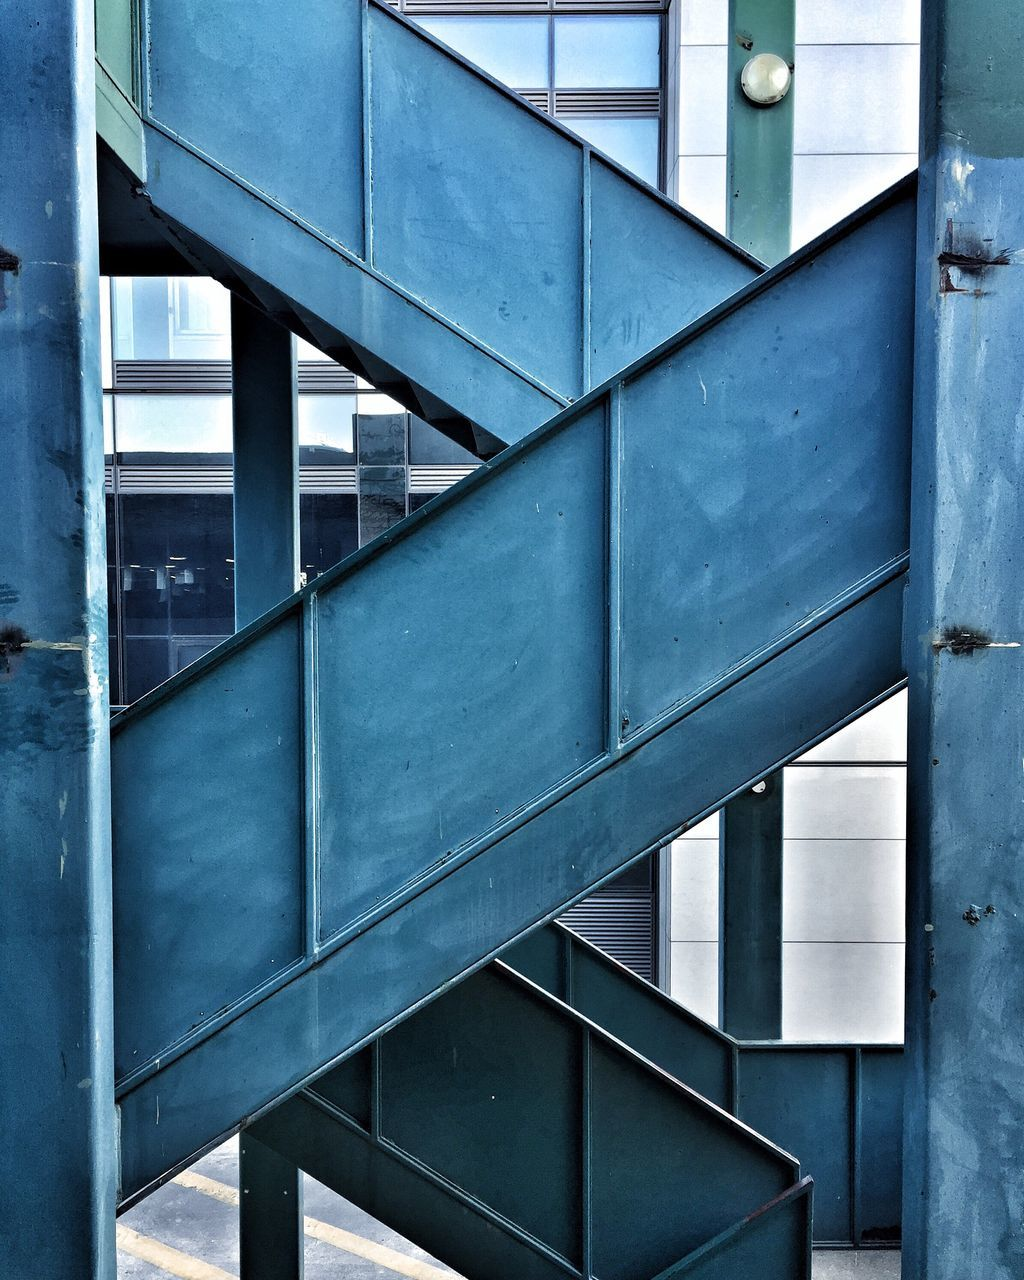 Metallic Staircases Against Building